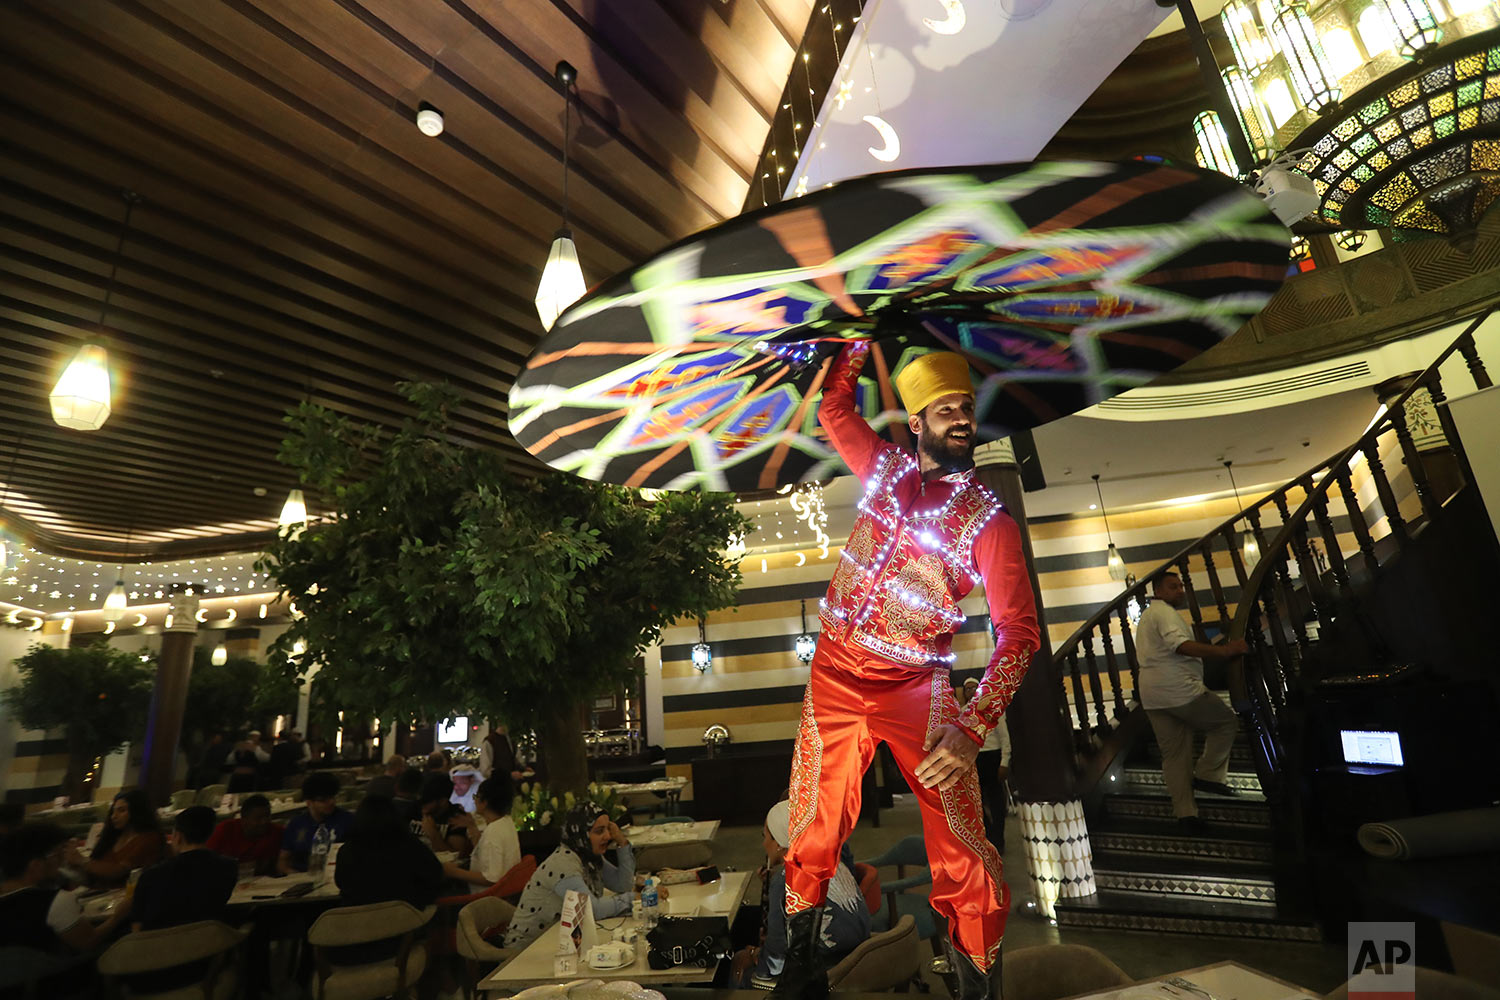 In this Wednesday, May 8, 2019 photo, Egyptian Tanoura dancer, Mustafa Borsho, performs at a restaurant located in Souq Waqif in Doha, Qatar. (AP Photo/Kamran Jebreili)